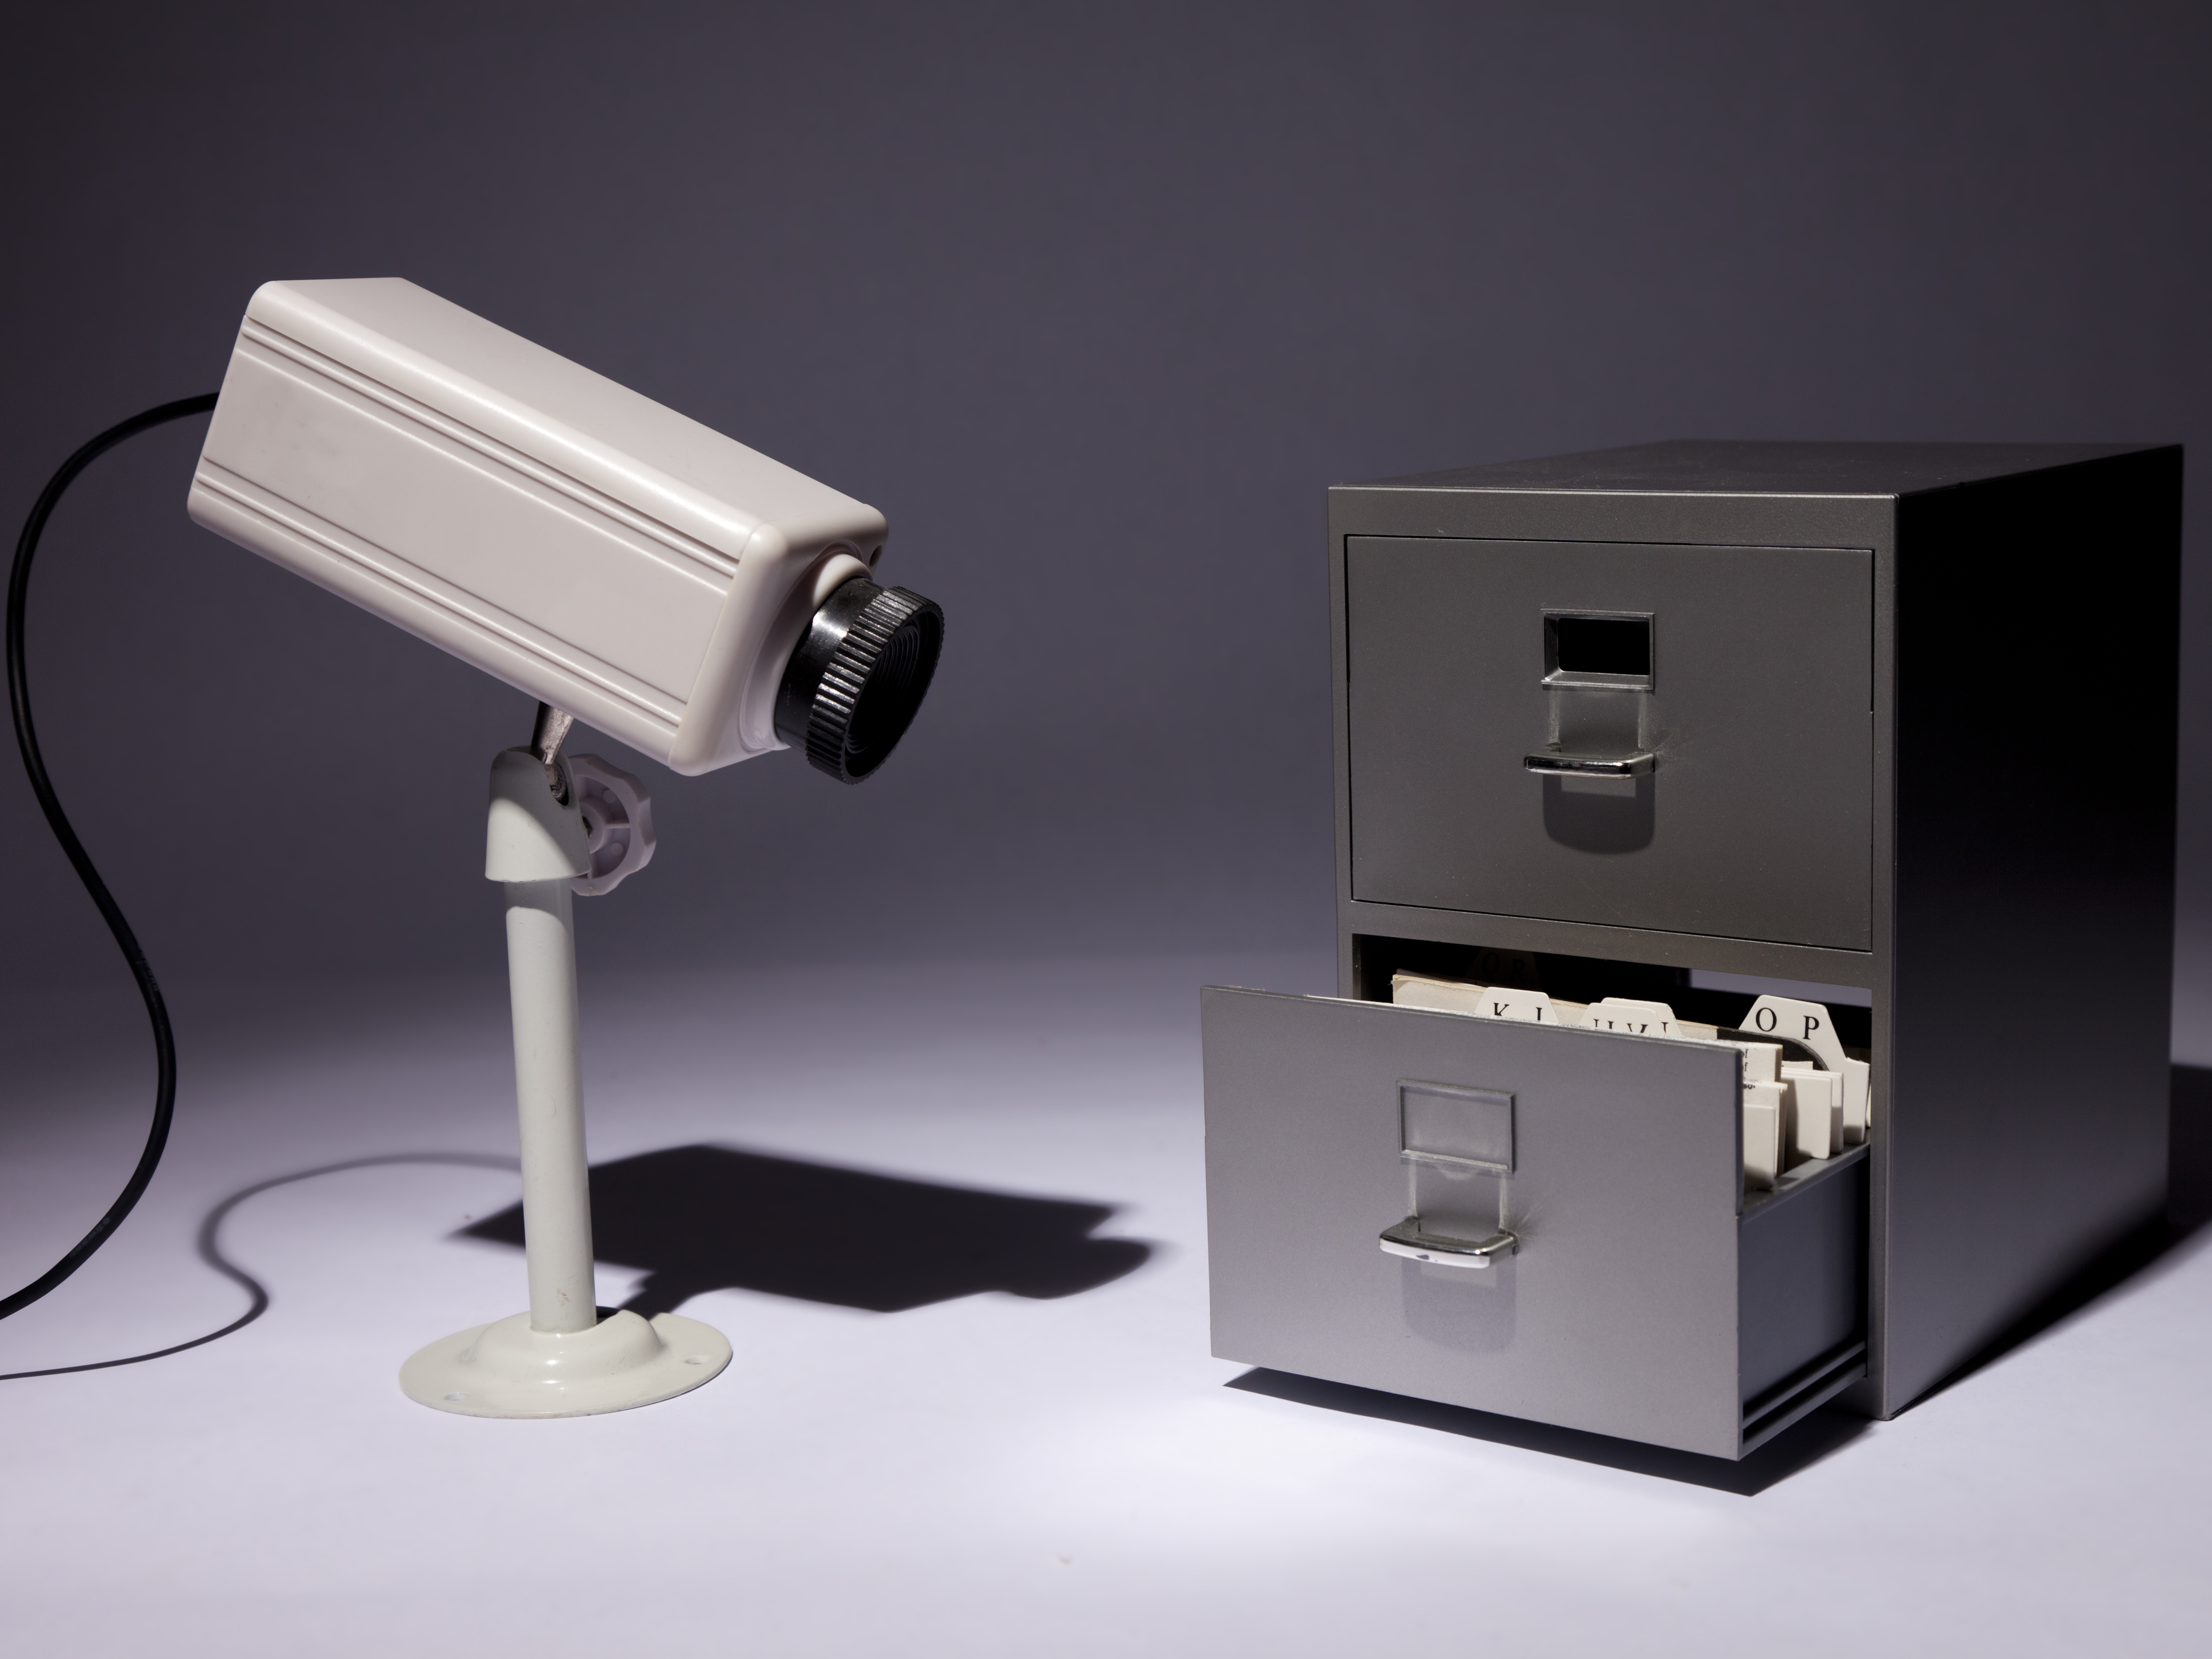 Workplace theft can affect any kind of business, regardless of industry